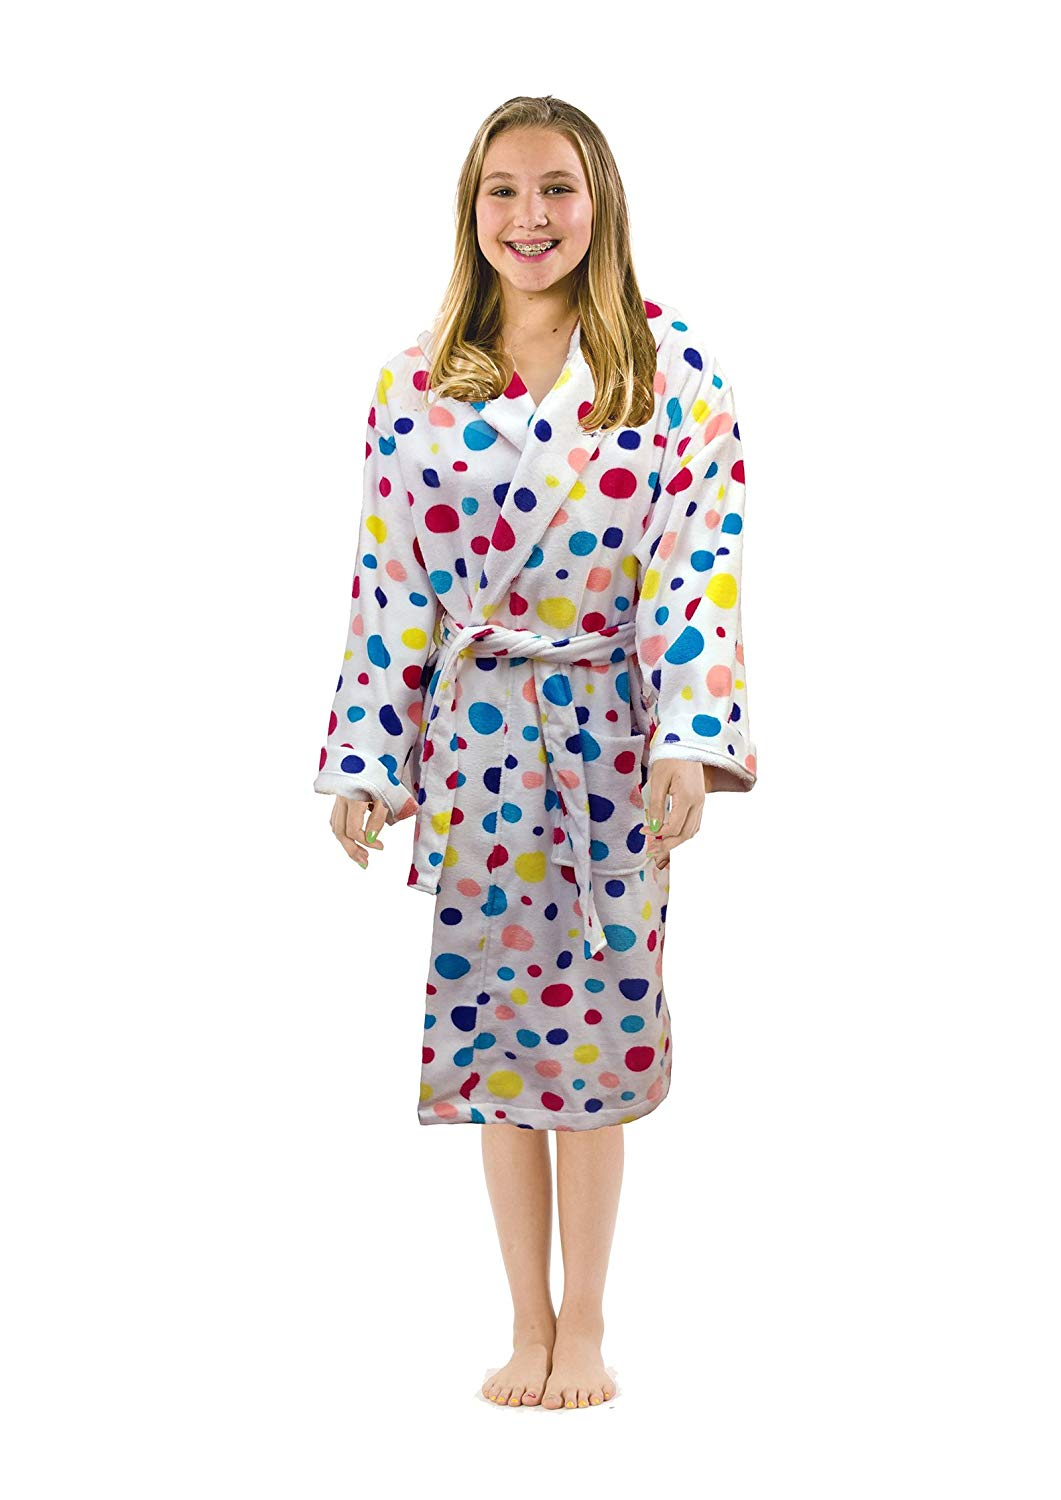 ce0b432d93 Get Quotations · Polka Dot Terry Cloth Cotton Hooded robes bathrobes for  girls